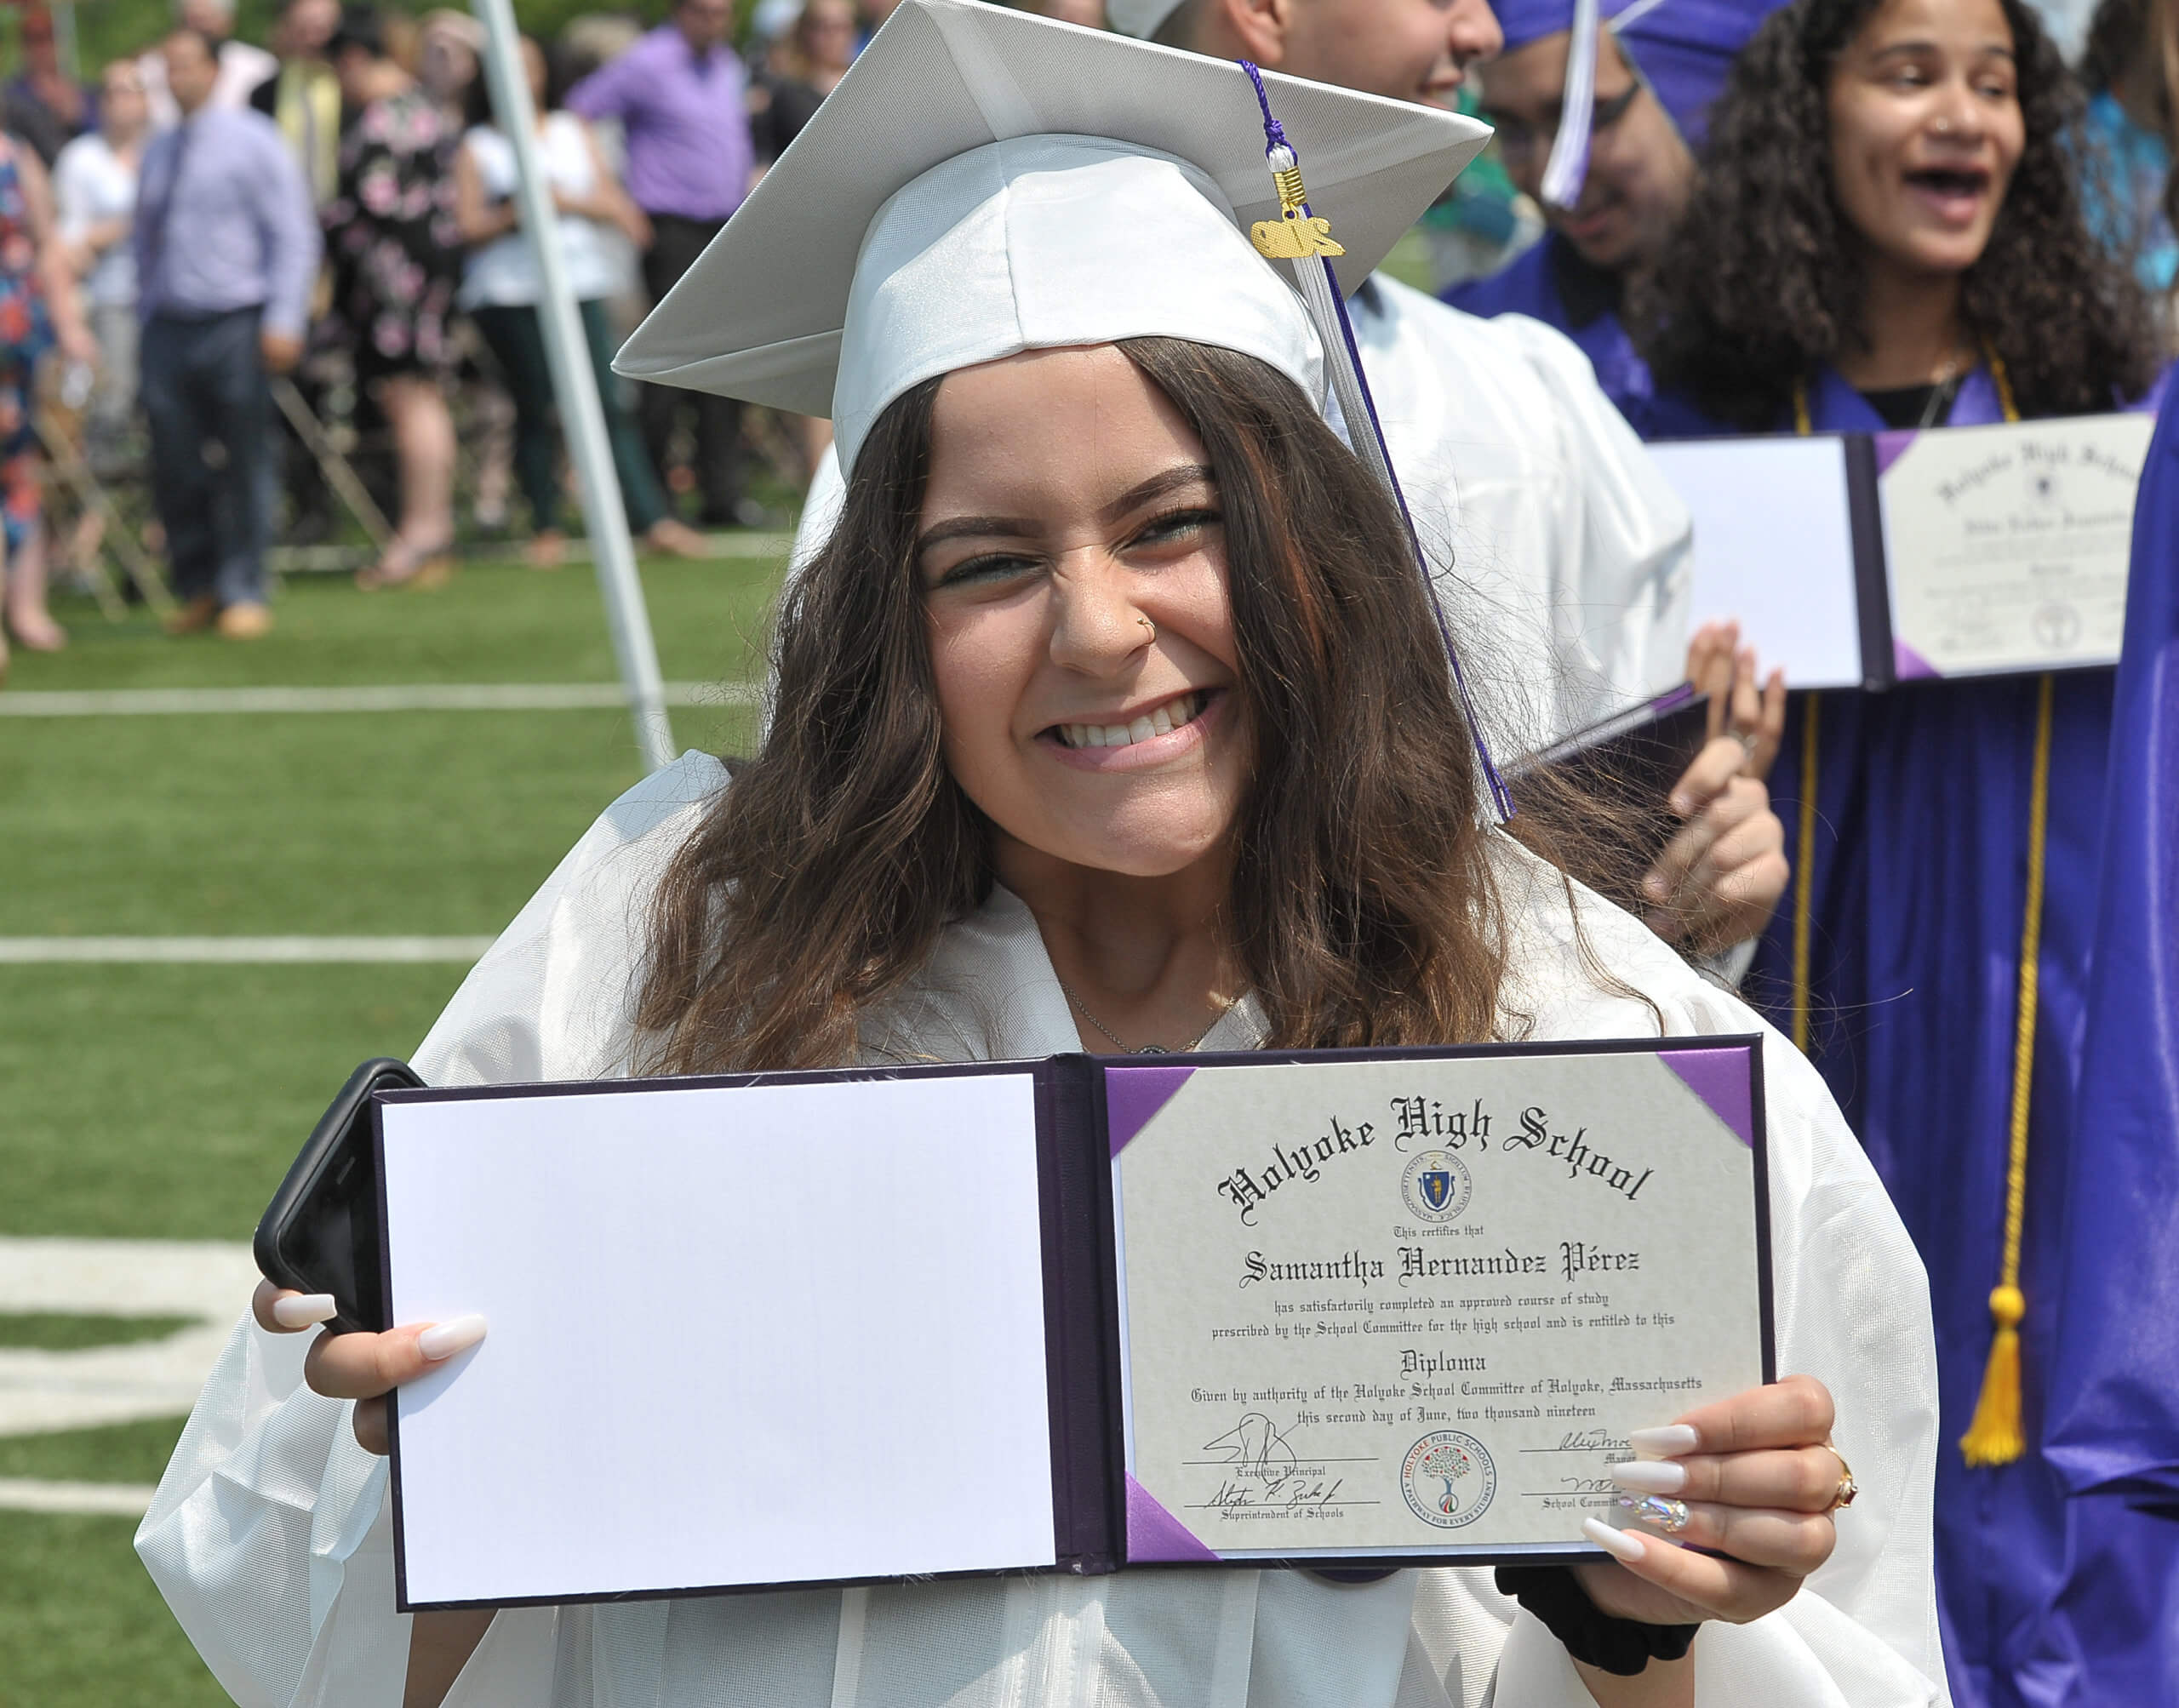 PRESS RELEASE – Holyoke Public Schools dropout rate nearly cut in half and graduation rate improves